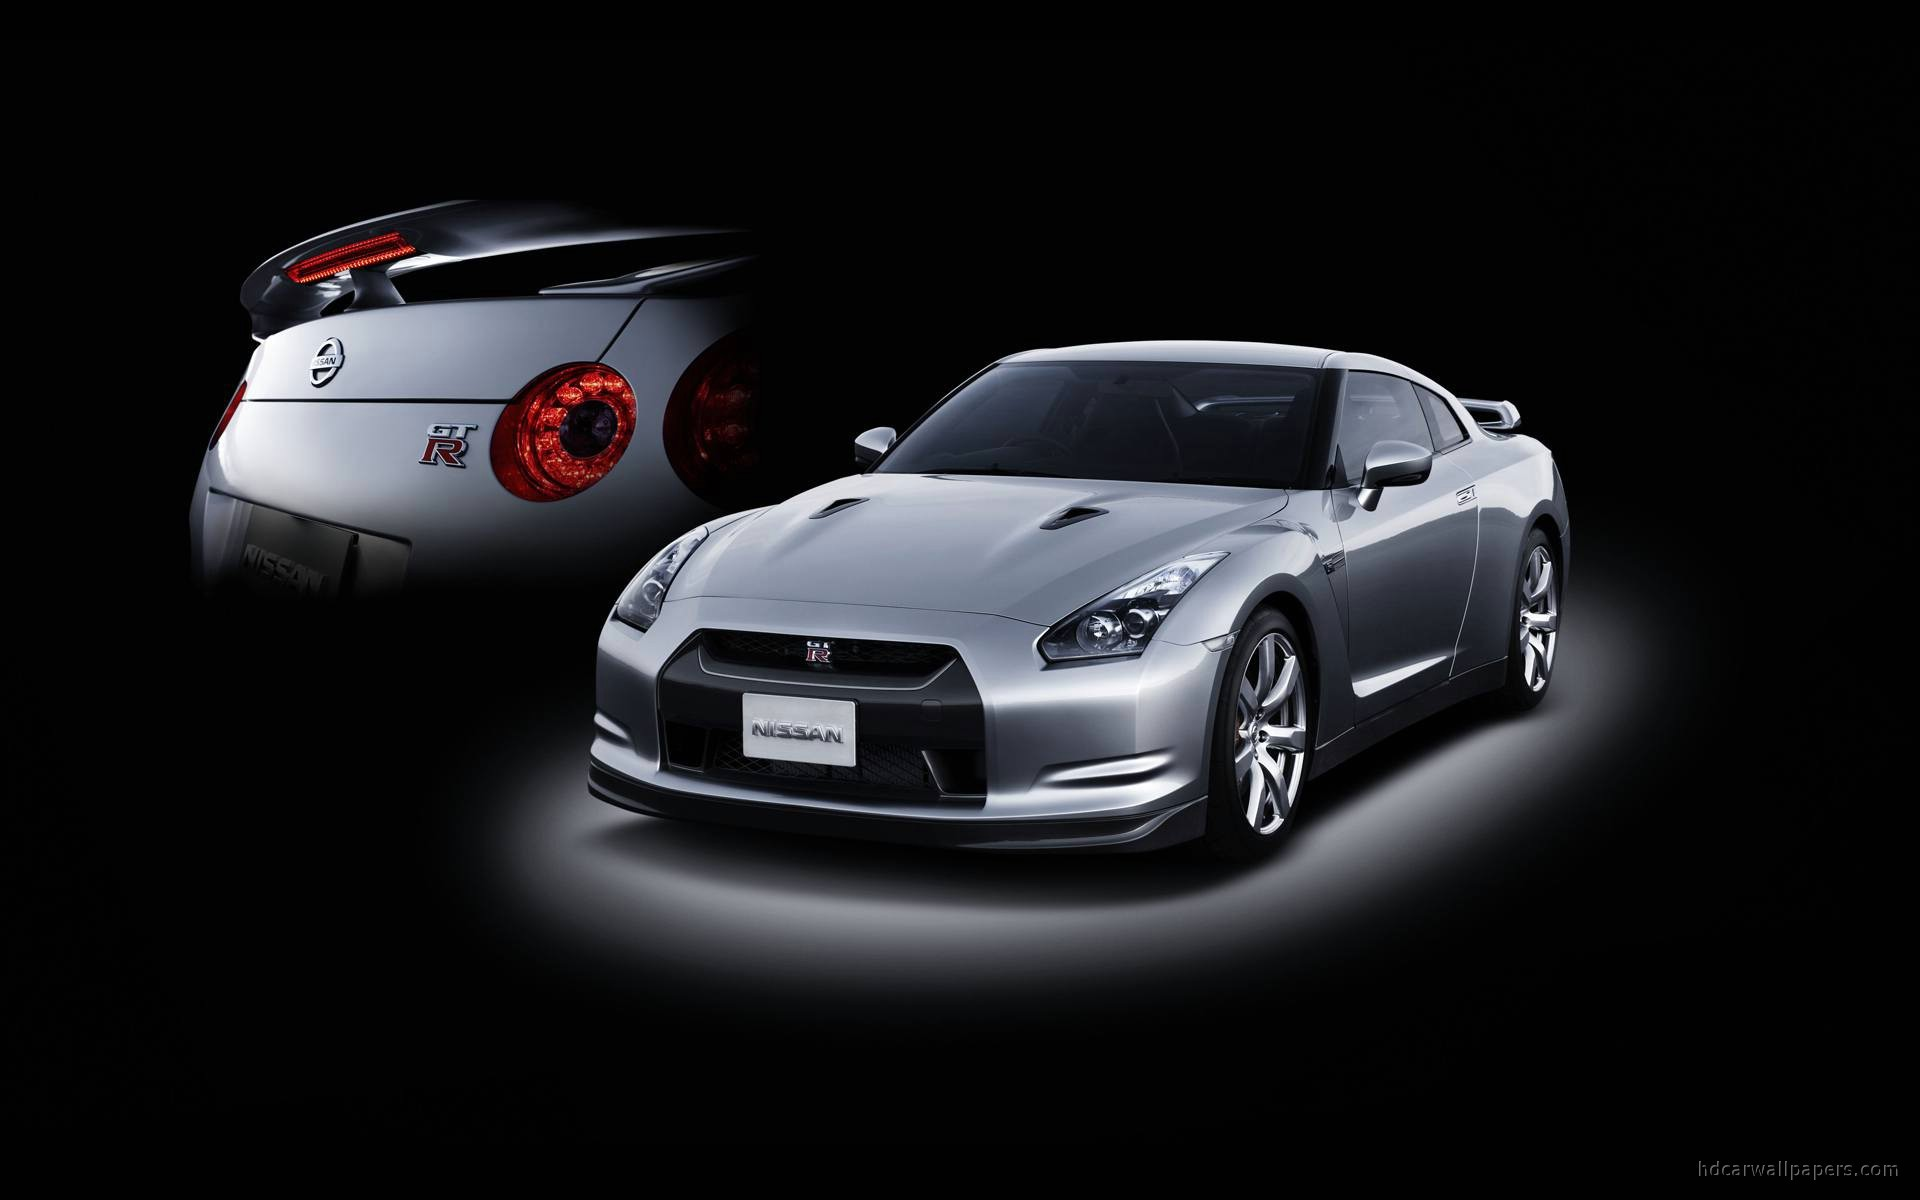 Nissan Gt R 2 Wallpaper Hd Car Wallpapers Id 1329